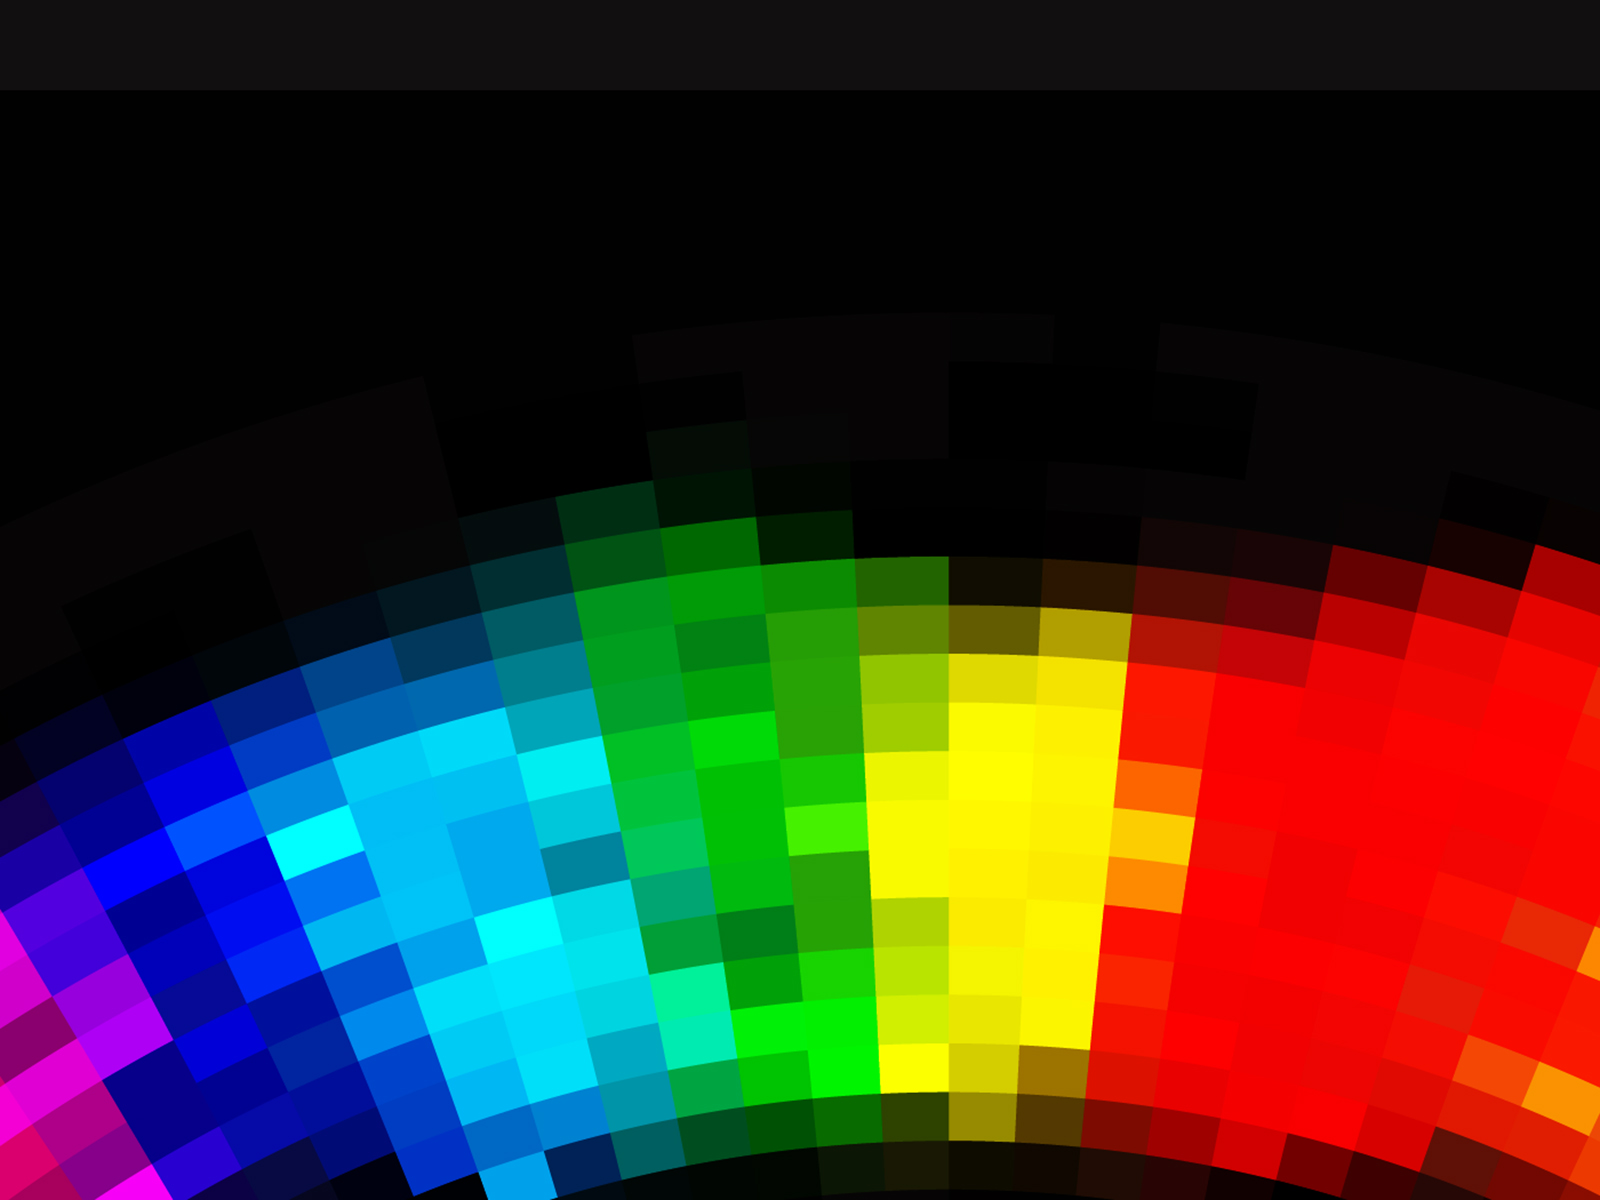 Drawn rainbow ppt Ppt Backgrounds PPT Free backgrounds